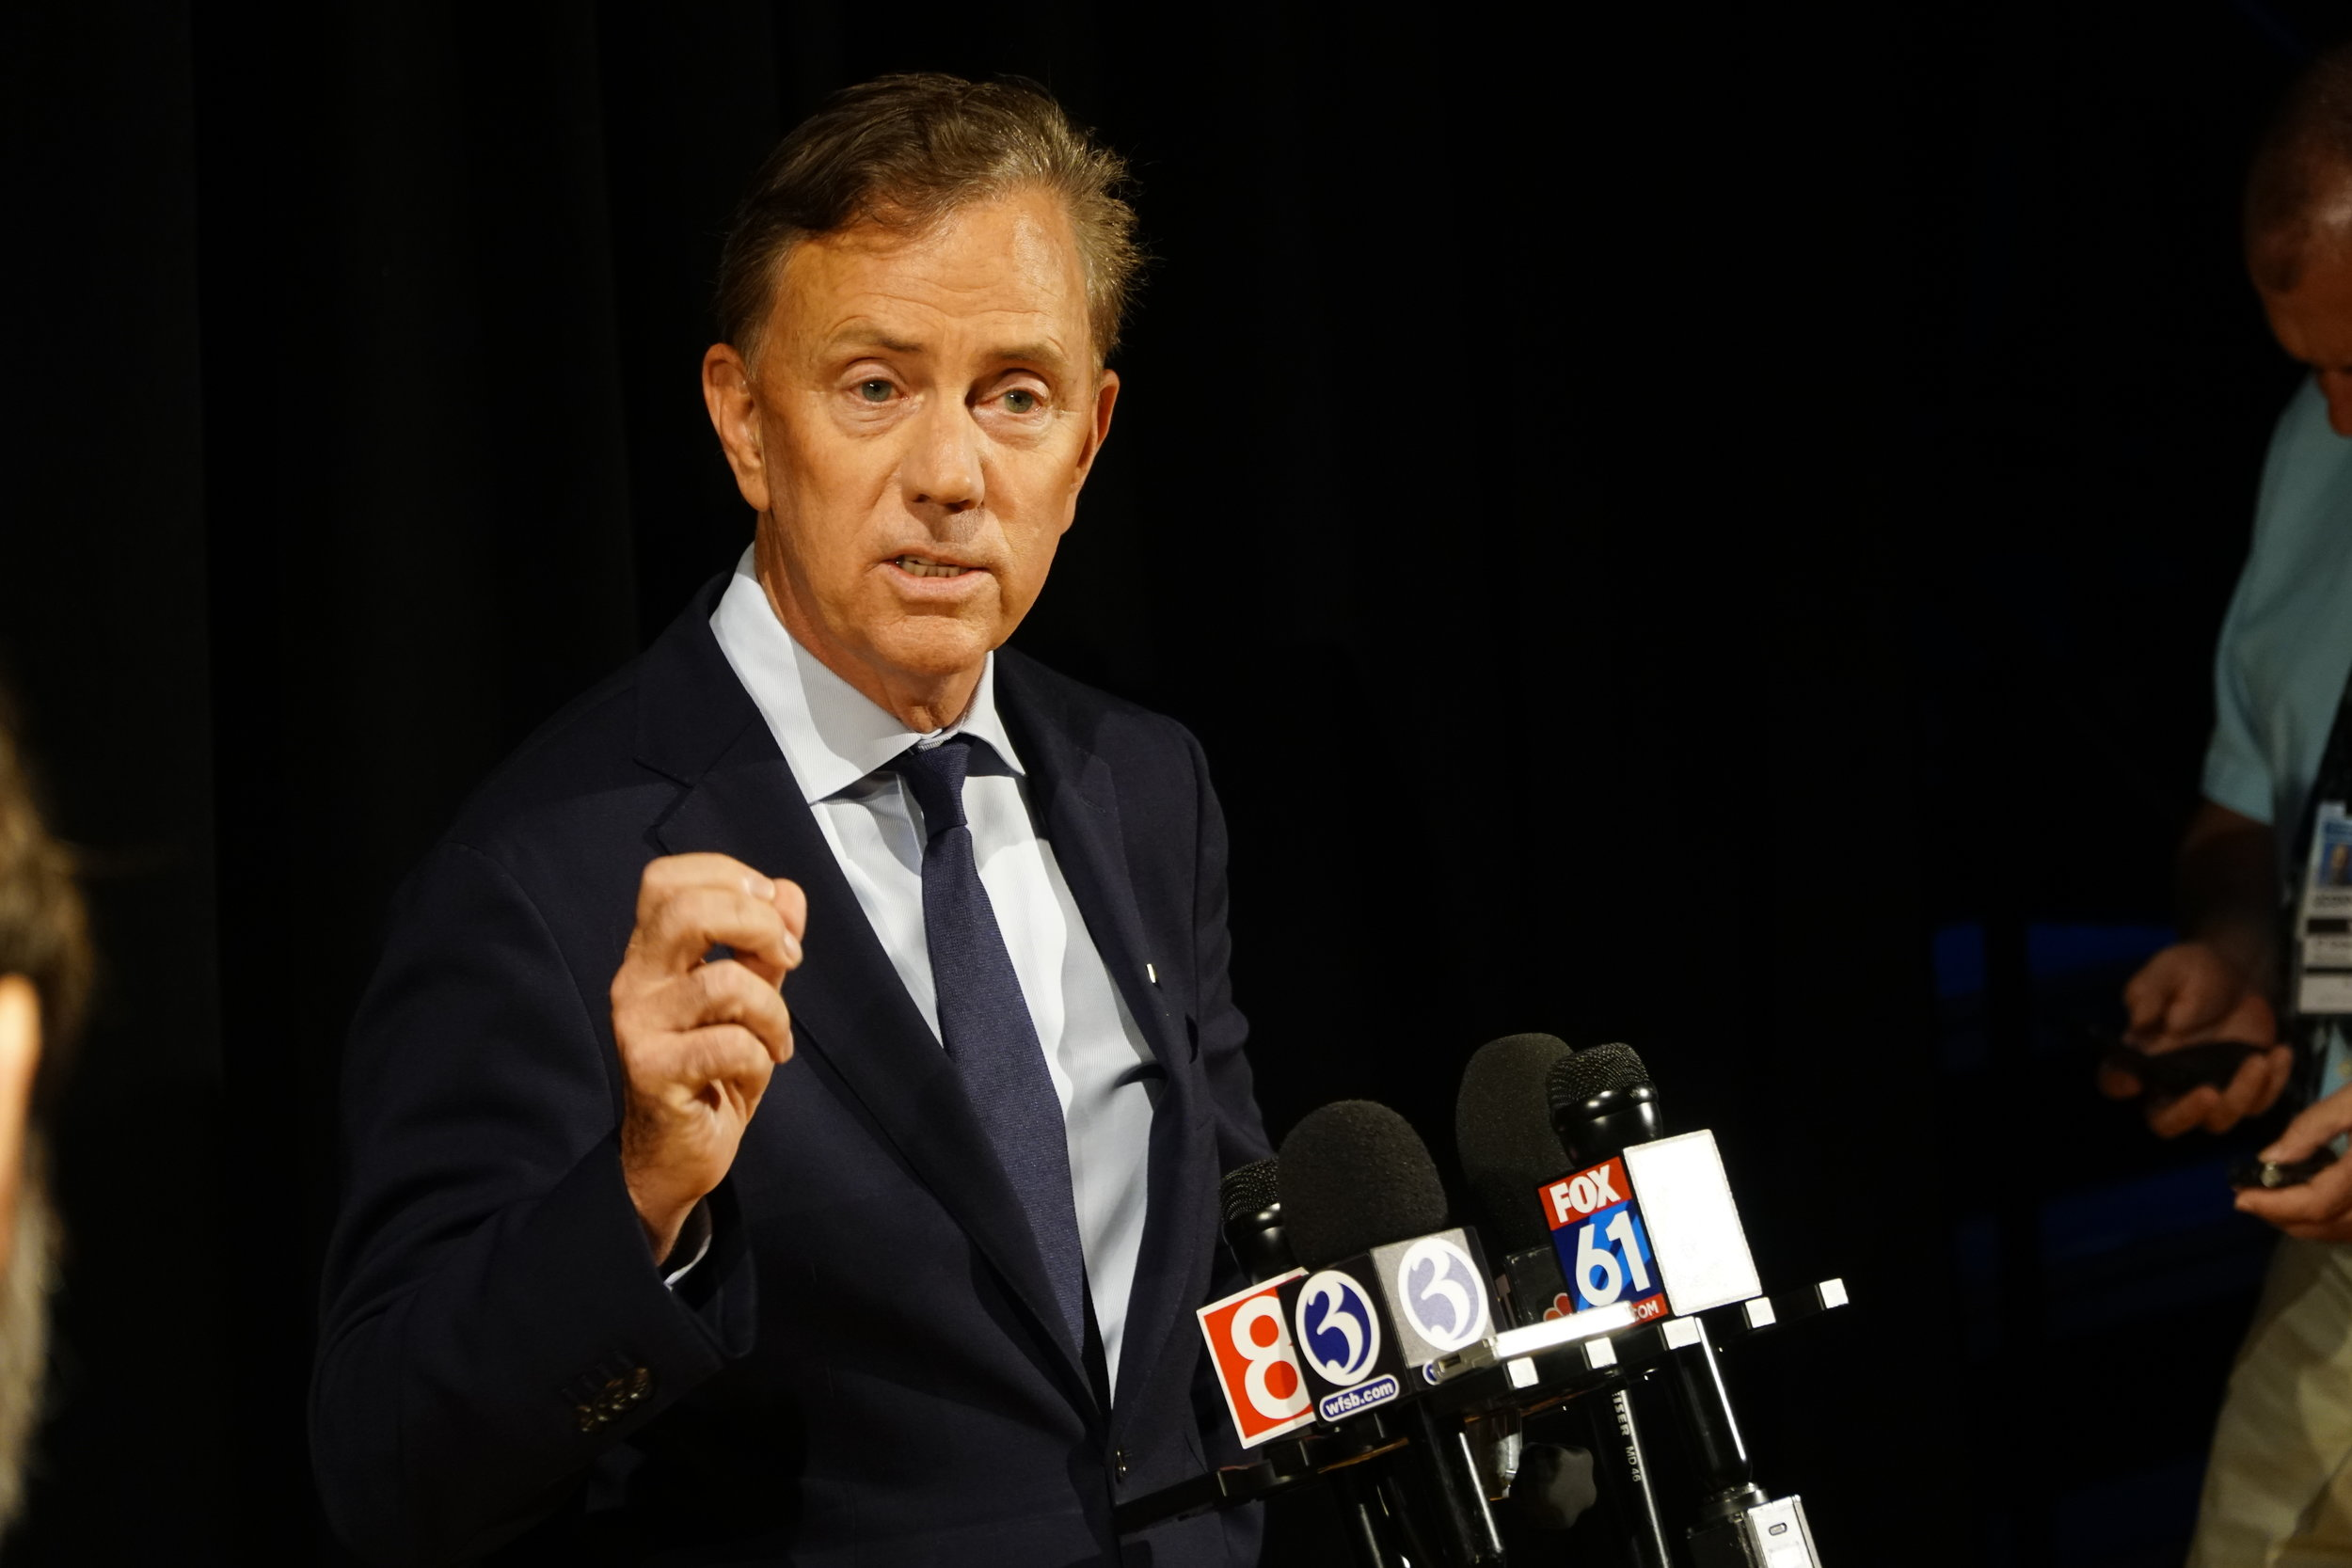 Democratic candidate for governor Ned Lamont speaks at a Gubernatorial debate at the University of Connecticut on Sept. 17, 2018. (Eric Wang/ The Daily Campus)